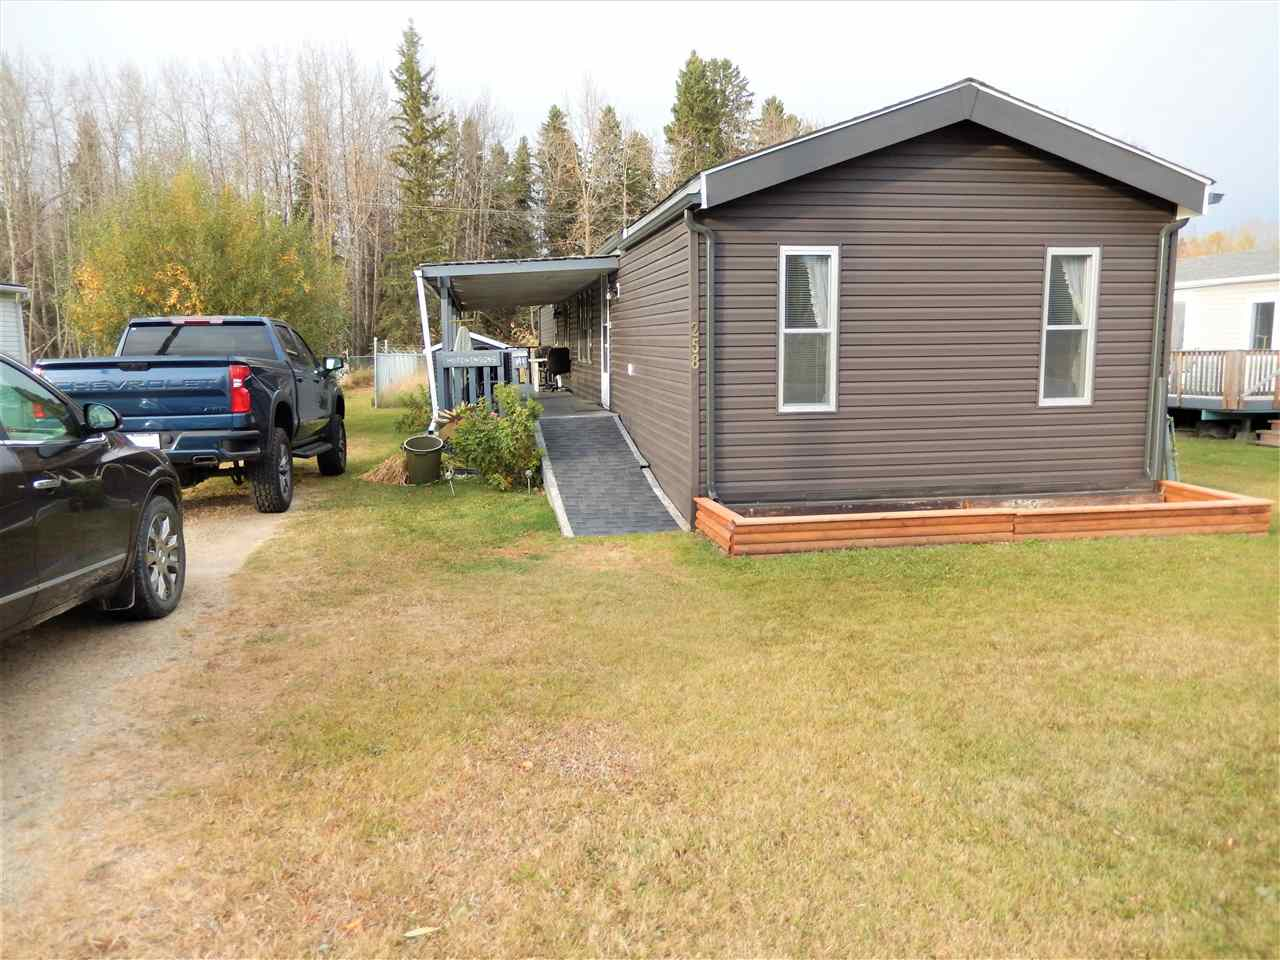 BACKS ONTO THE BIKING/WALKING TRAILS! You don't even feel like you are living in a Mobile Home Park! This home sits on a regular residential street, second home from the edge of the school field. Great Location! This 3 bedr, 2 bath home has only had one owner & has had lots of RENOS over the years! The SHINGLES, SIDING (2016), EAVESTROUGH (2018), FURNACE (2017) and they also replaced the TOILETS plus the LAMINATE FLOORING in Living Rm, Mastr Bedr.  There is LINO in the rest of the home. The home has GOOD SIZED BEDRS & nice LAYOUT. Ensuite has a JACUZZI.  The COVERED DECK faces West and the yard is FENCED other than the front and there is a SHED.  Mobile City sits in the heart of Spruce Grove and is walking distance to many amenities.